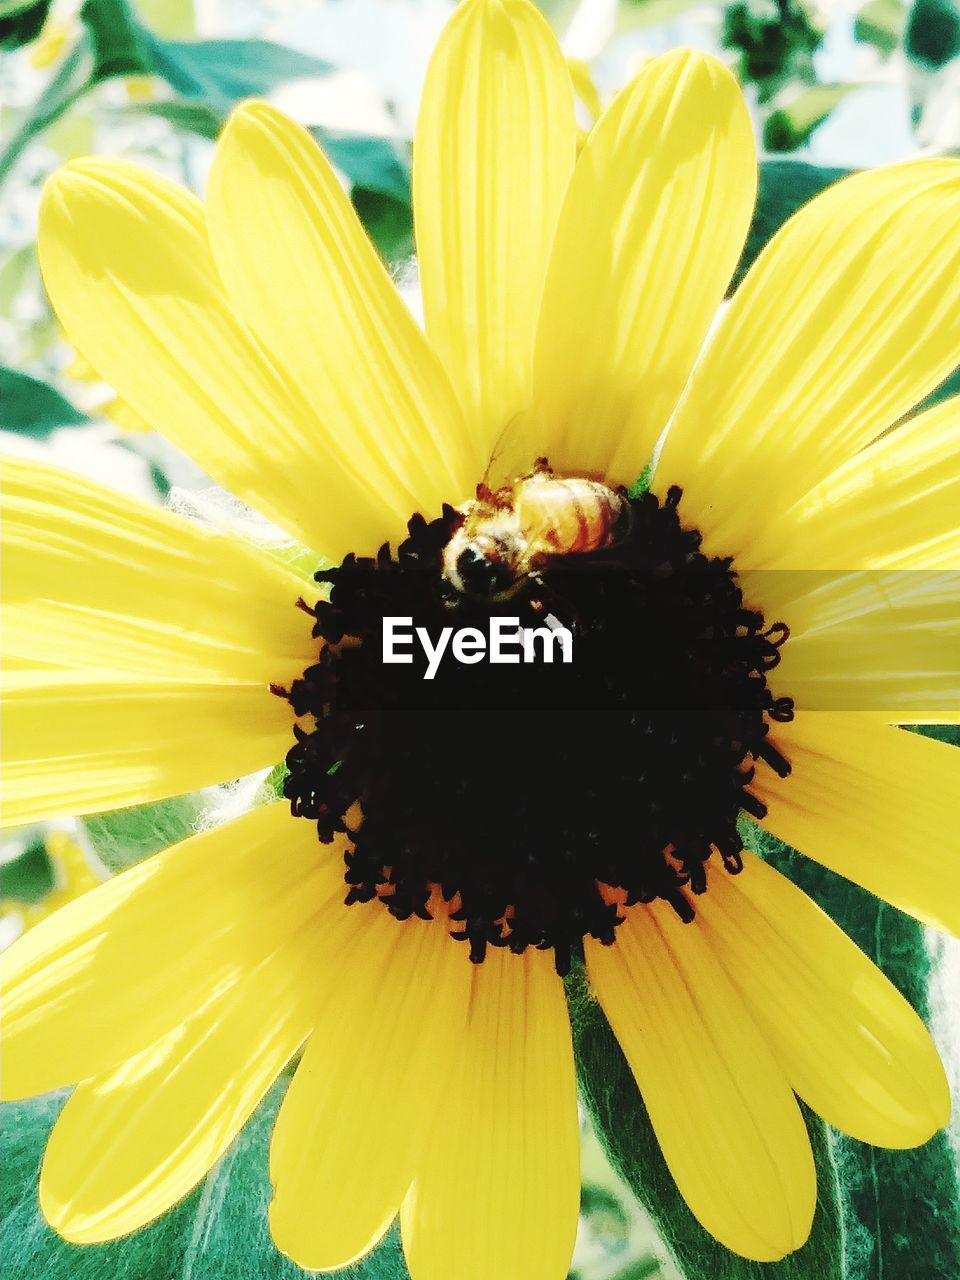 flowering plant, flower, freshness, yellow, petal, flower head, vulnerability, fragility, beauty in nature, inflorescence, growth, plant, close-up, pollen, animal themes, nature, invertebrate, insect, animal, one animal, no people, outdoors, pollination, sunflower, springtime